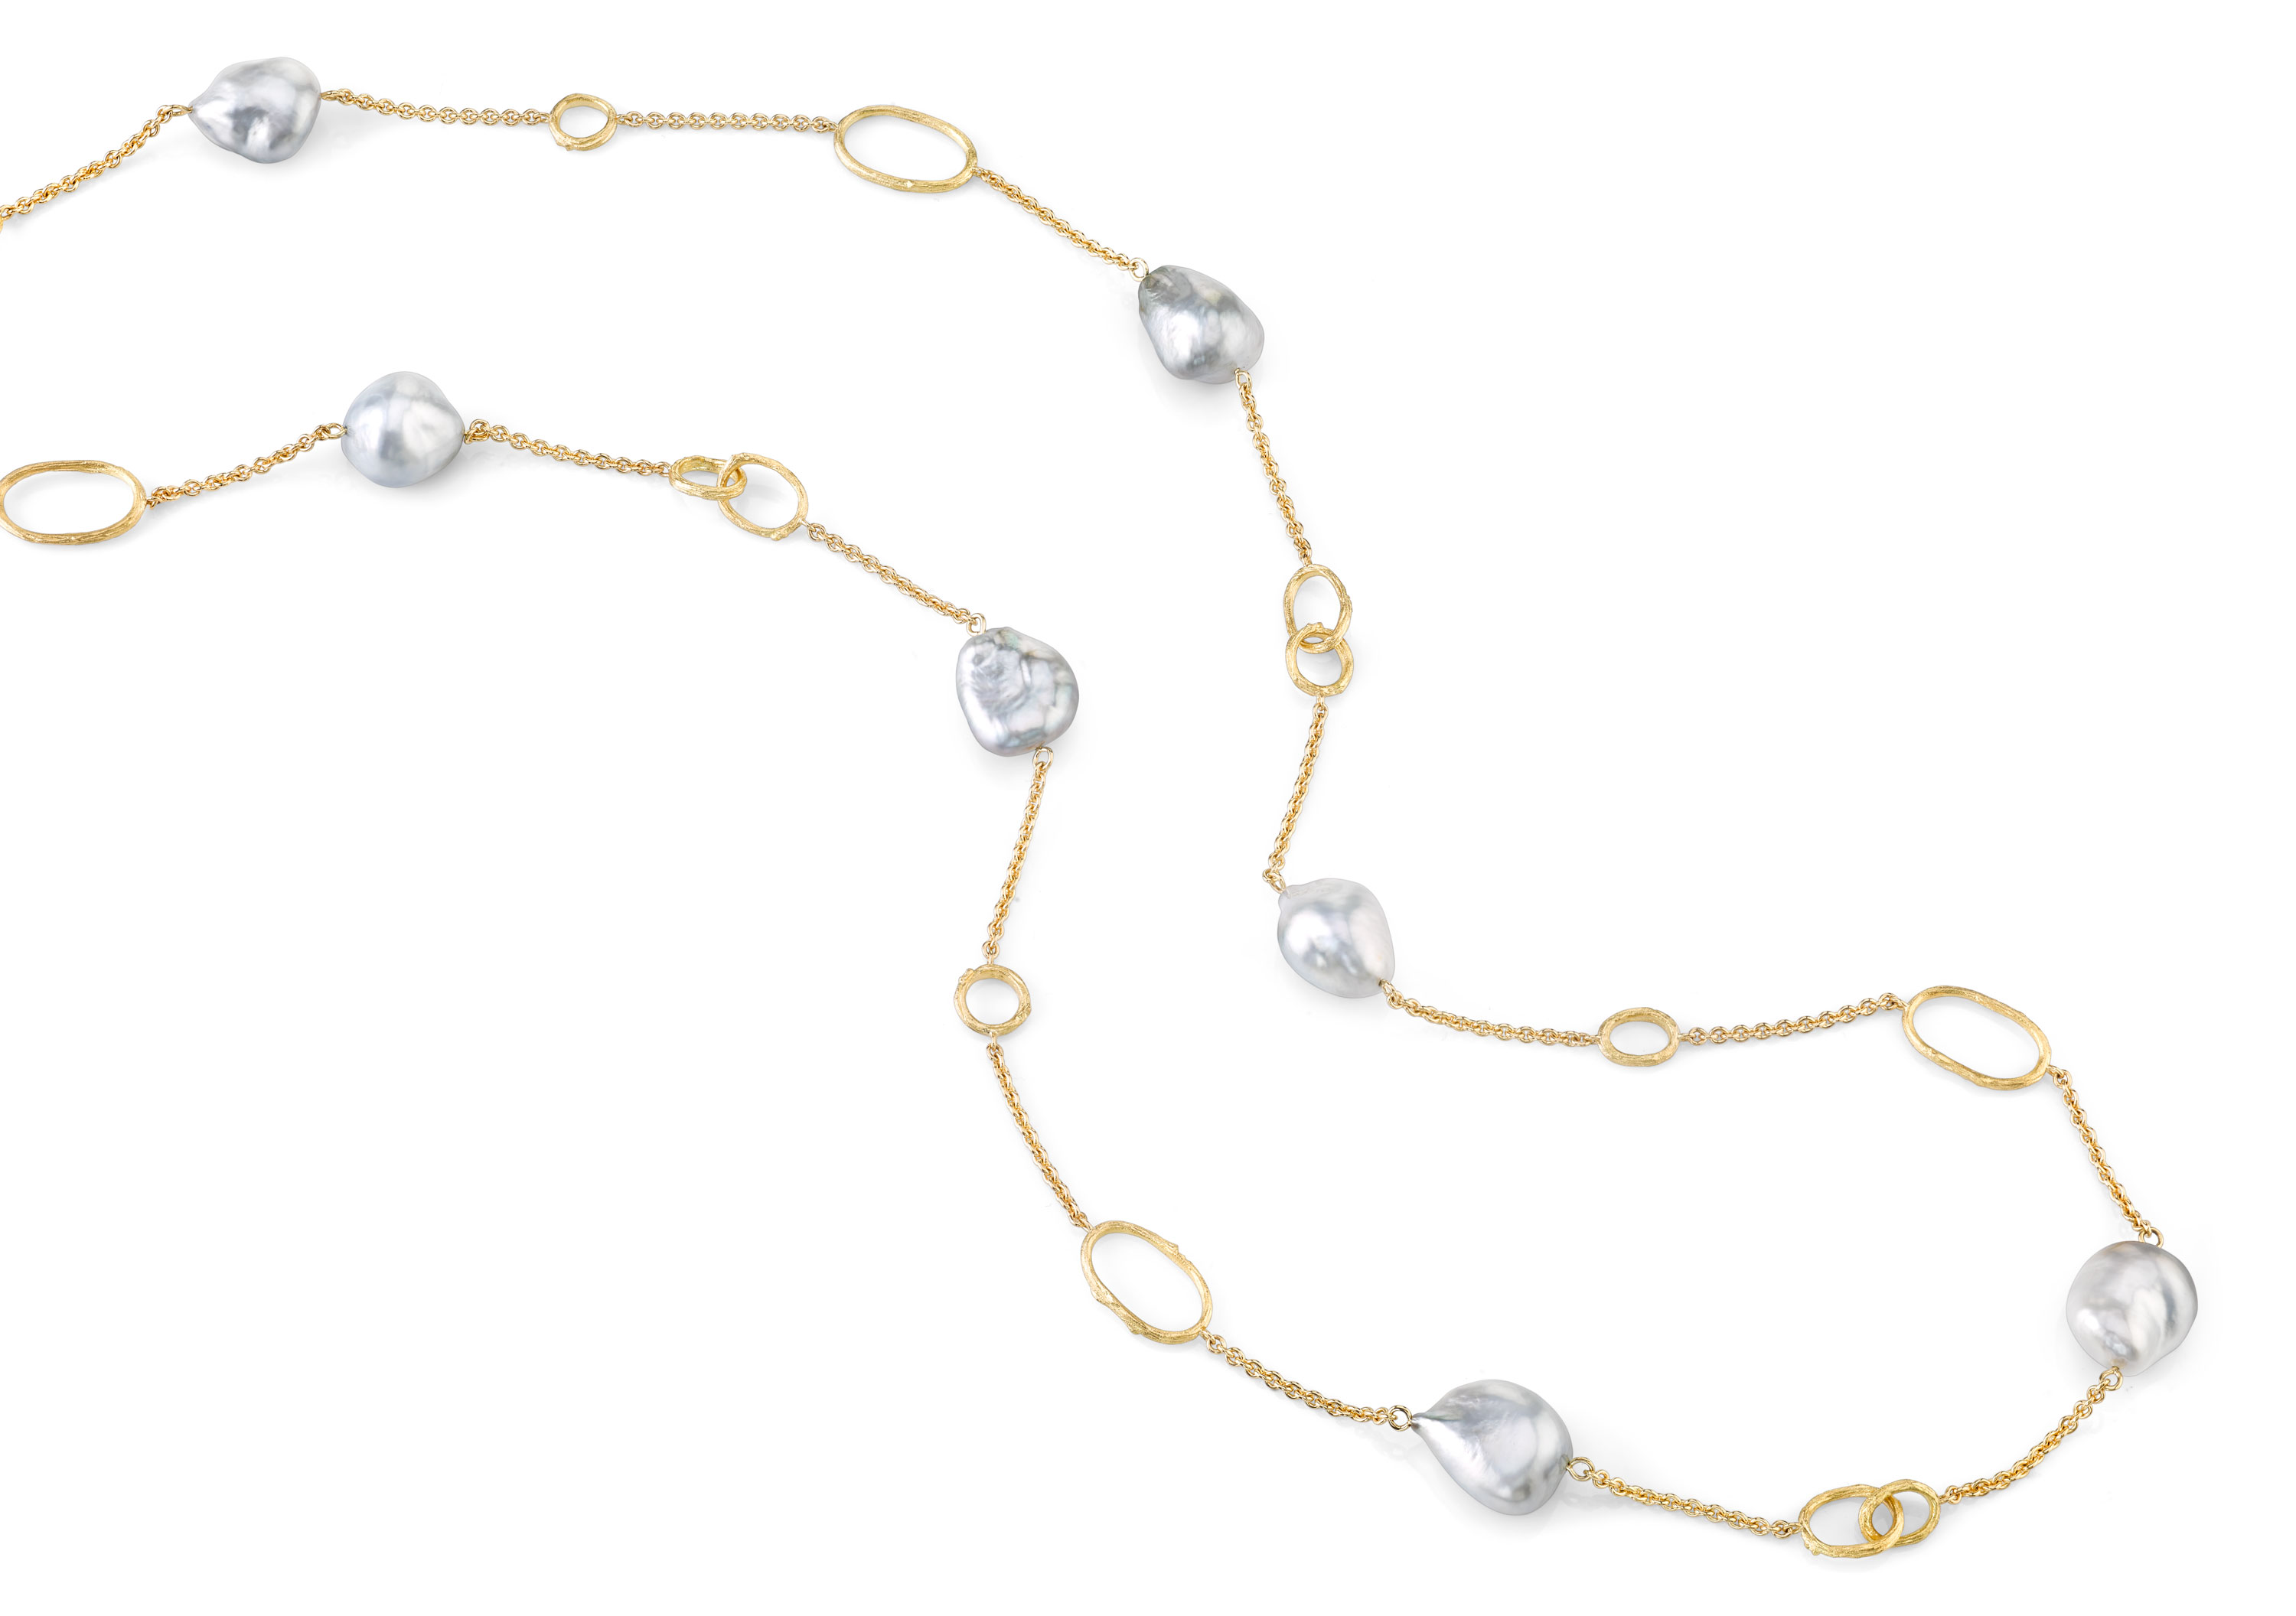 Aaron Henry gold and pearl necklace | JCK On Your Market